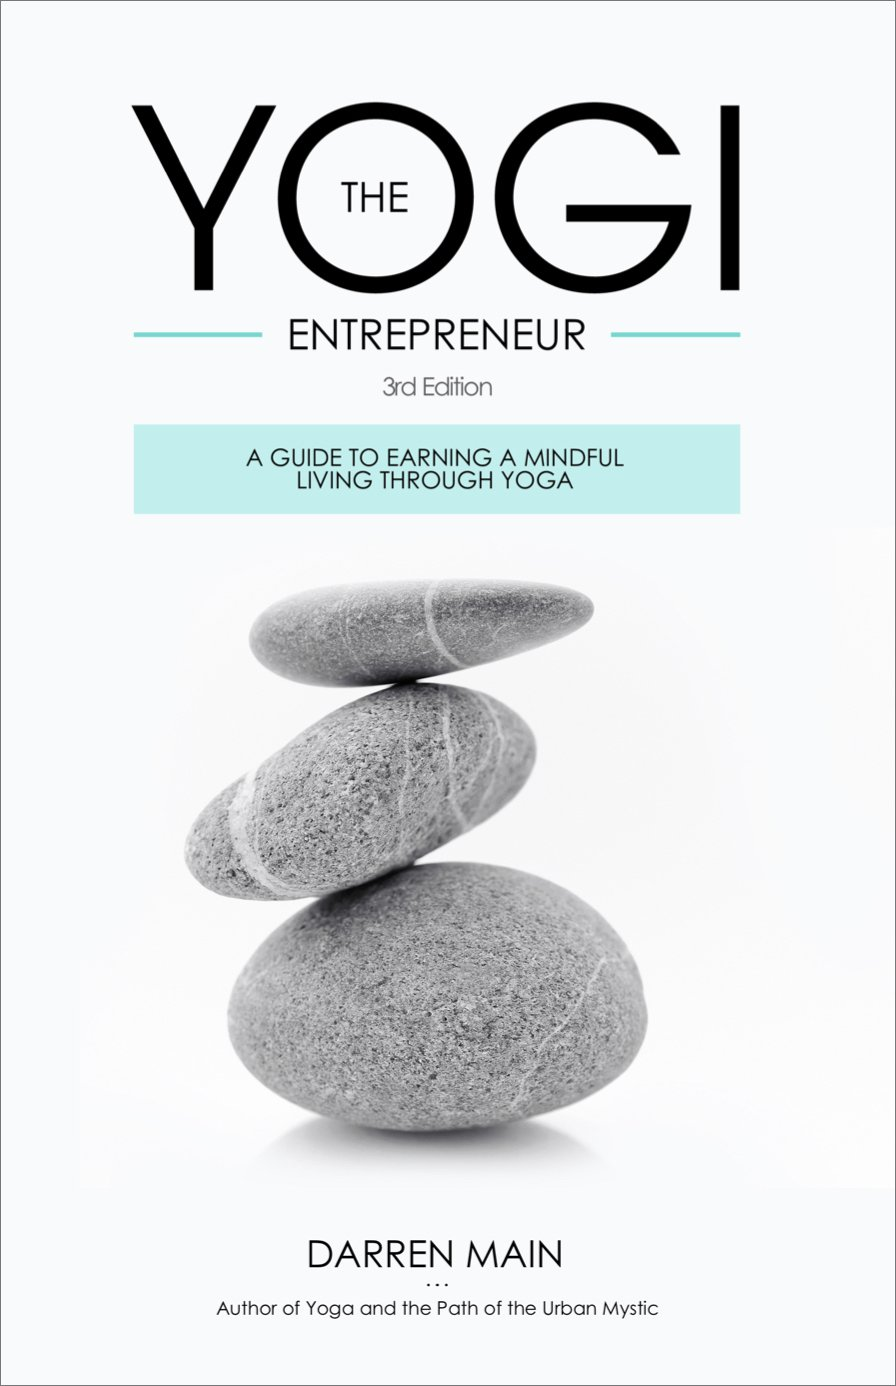 The Yogi Entrepreneur: A Guide to Earning a Mindful Living Through ...